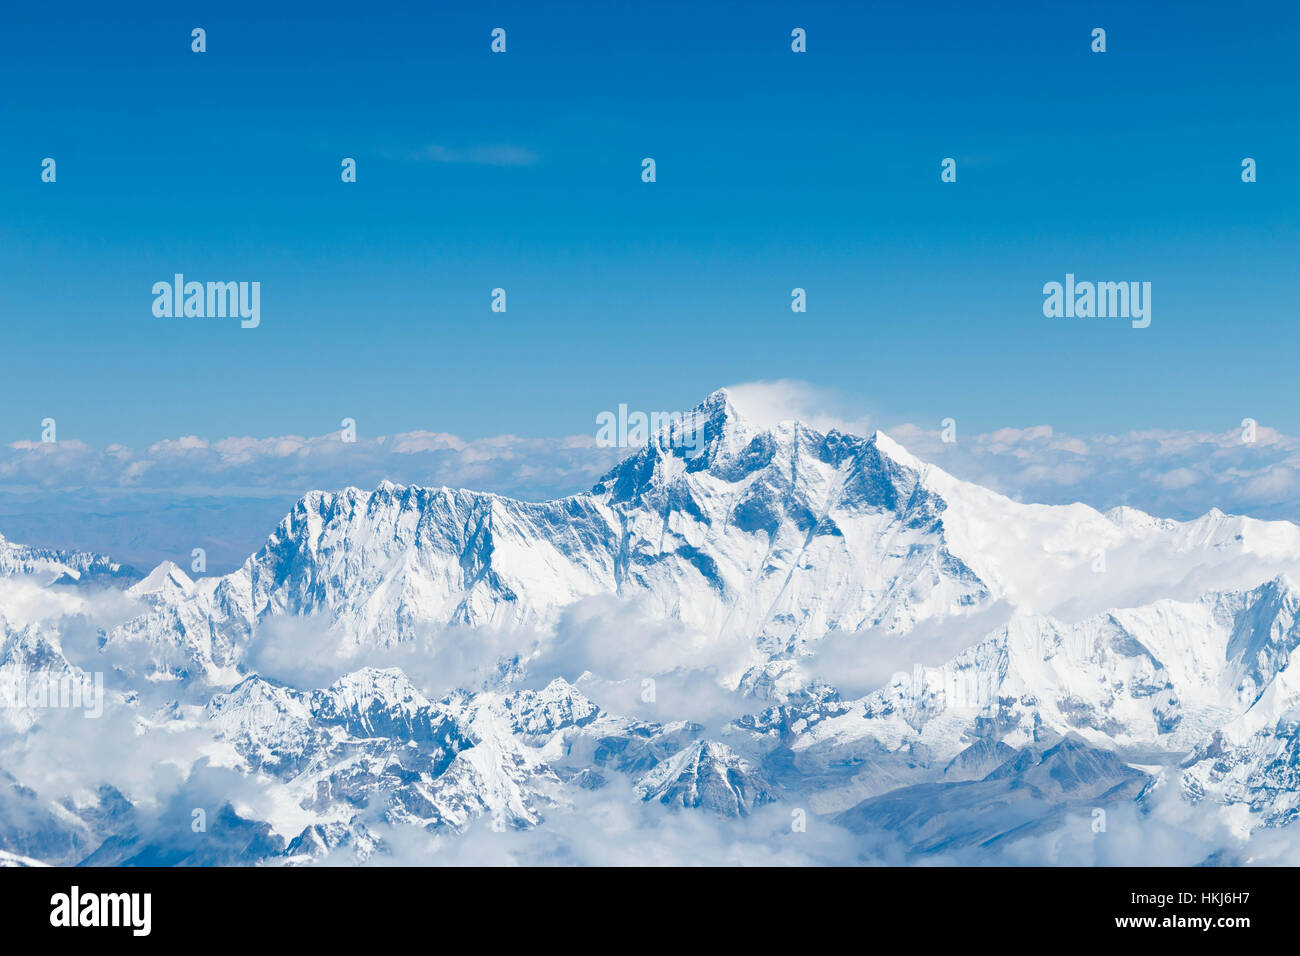 Mount Everest with Himalaya mountain range summit Peak view Aerial from a plane flyby Panorama landscape - Stock Image